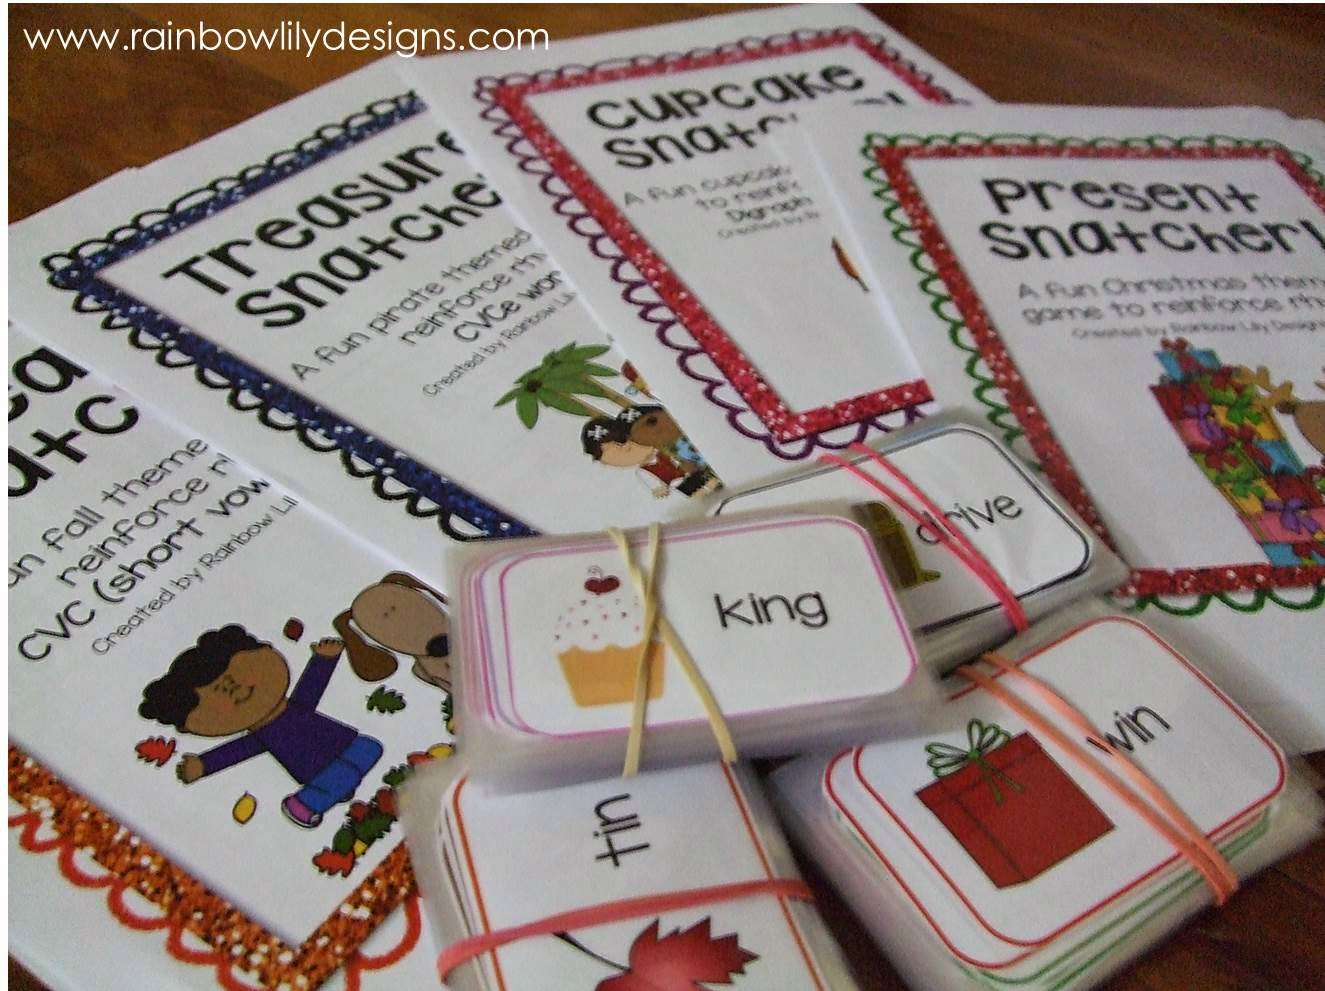 Great rhyming games #education #teacherspayteachers #RainbowLilyDesigns